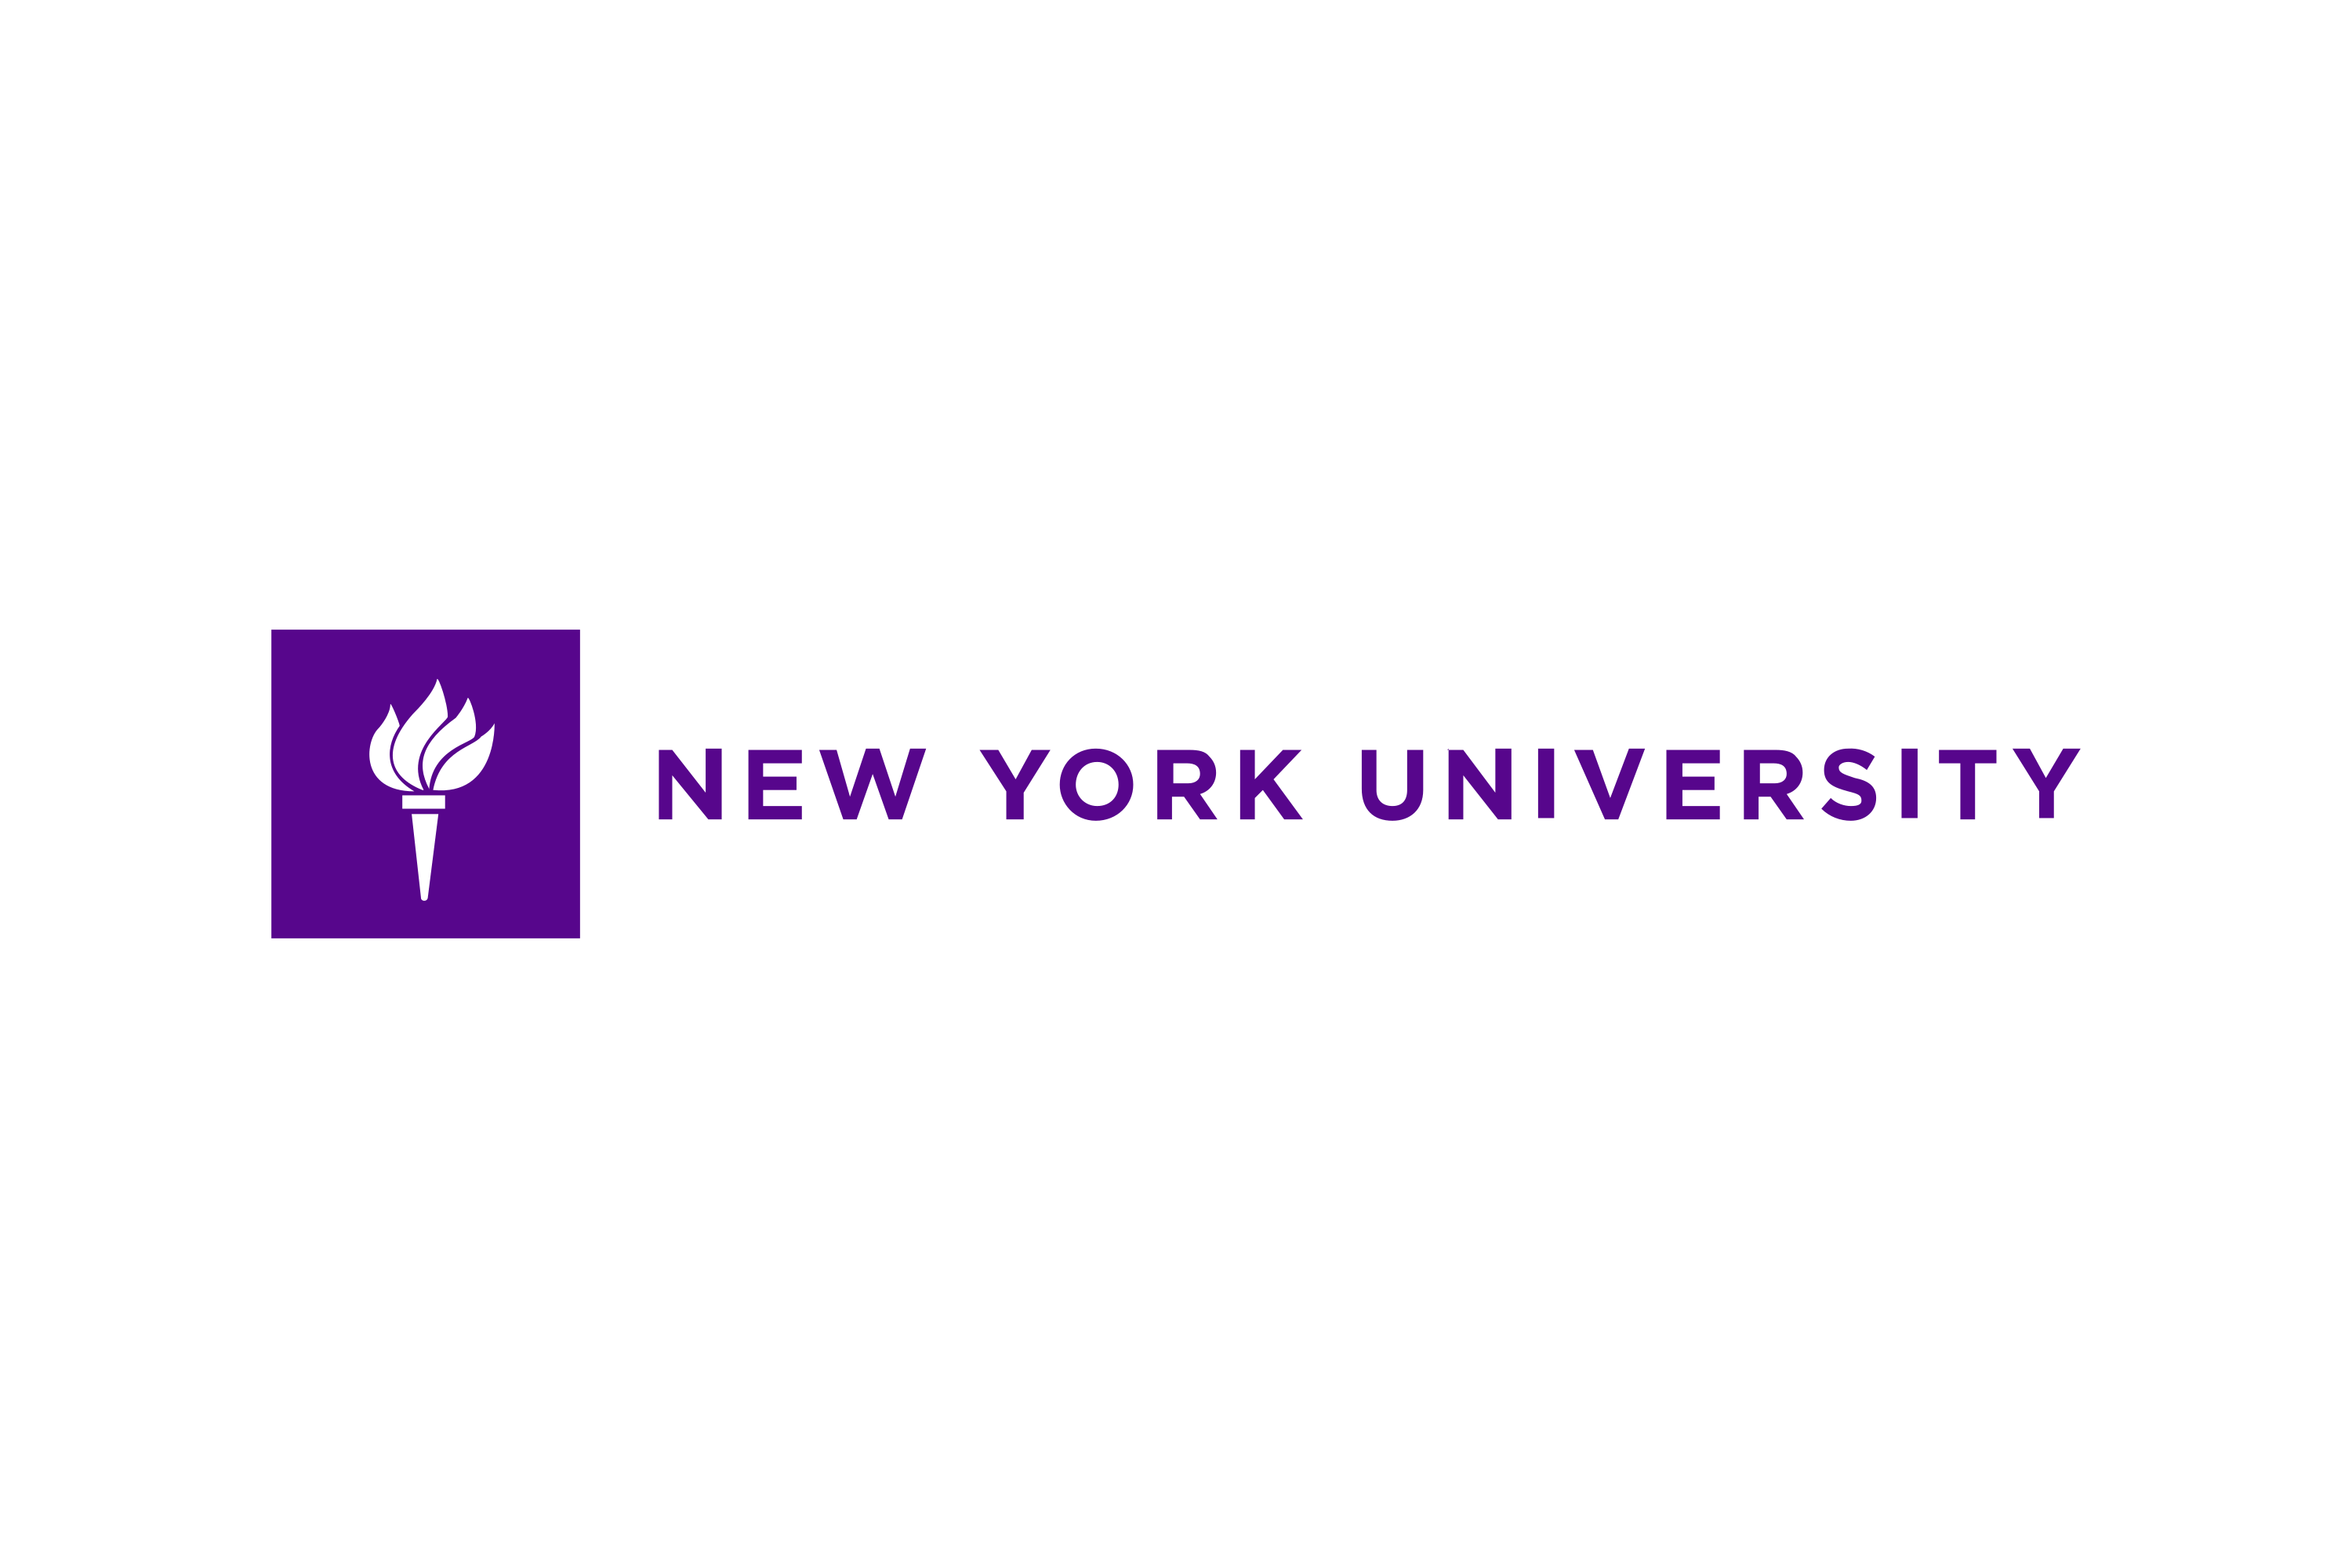 """New York University: Study Examines """"Red Flag"""" Gun Laws and State Efforts to Block Local Legislation India Education Diary RSS Feed INDIA EDUCATION DIARY RSS FEED  #EDUCATION #EDUCRATSWEB 